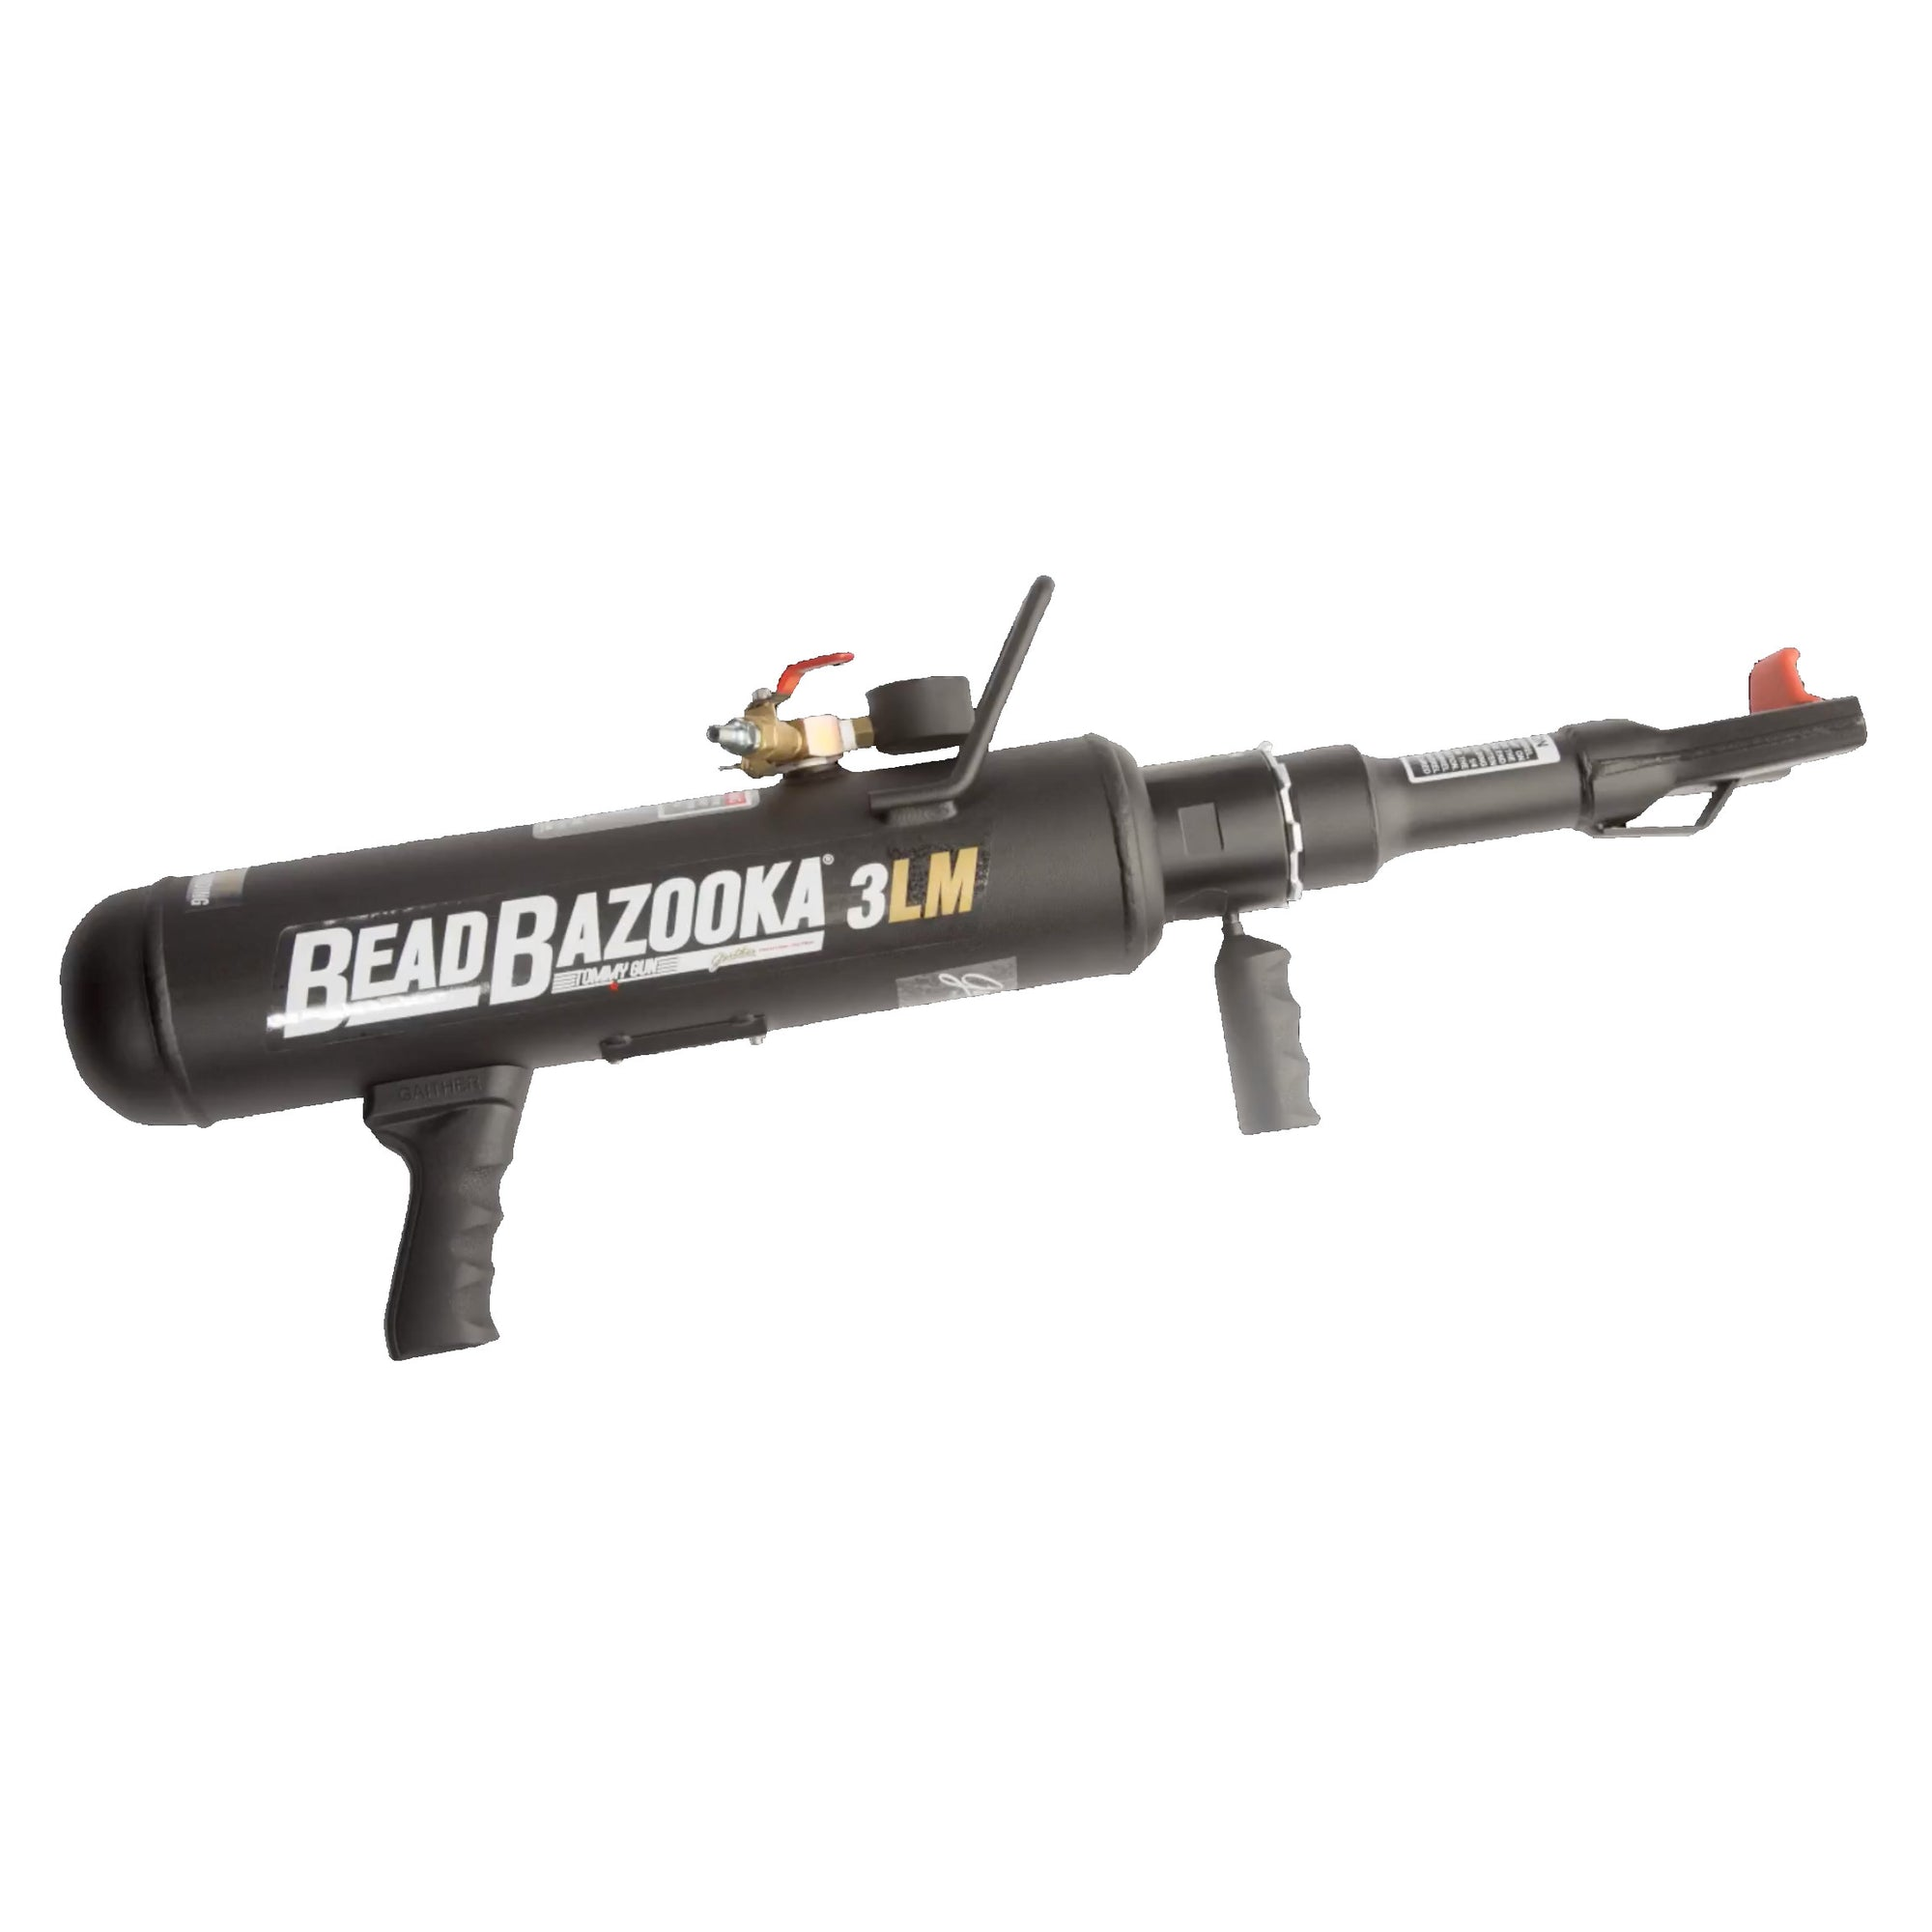 Gaither Tommy Gun Bead Bazooka (3 Liter) (BB3LM)